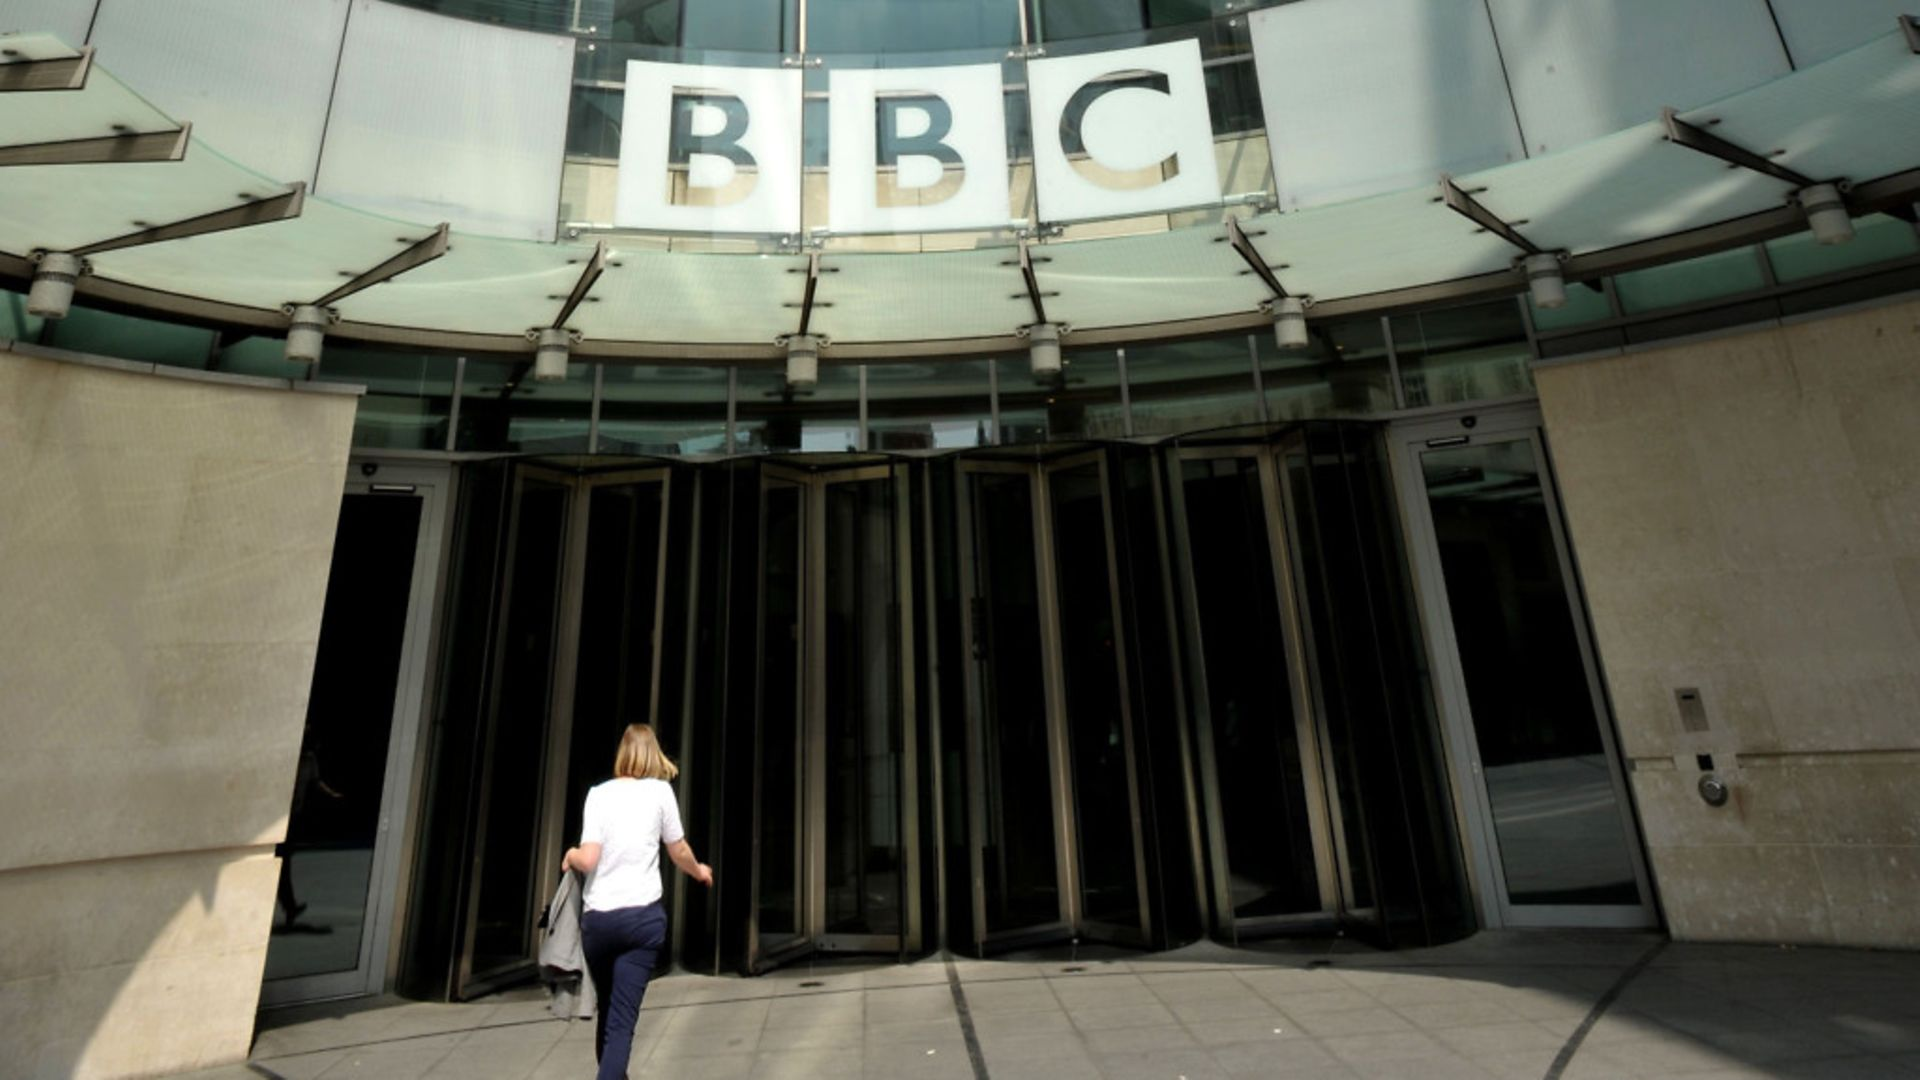 BBC Broadcasting House in London - Credit: PA Wire/PA Images